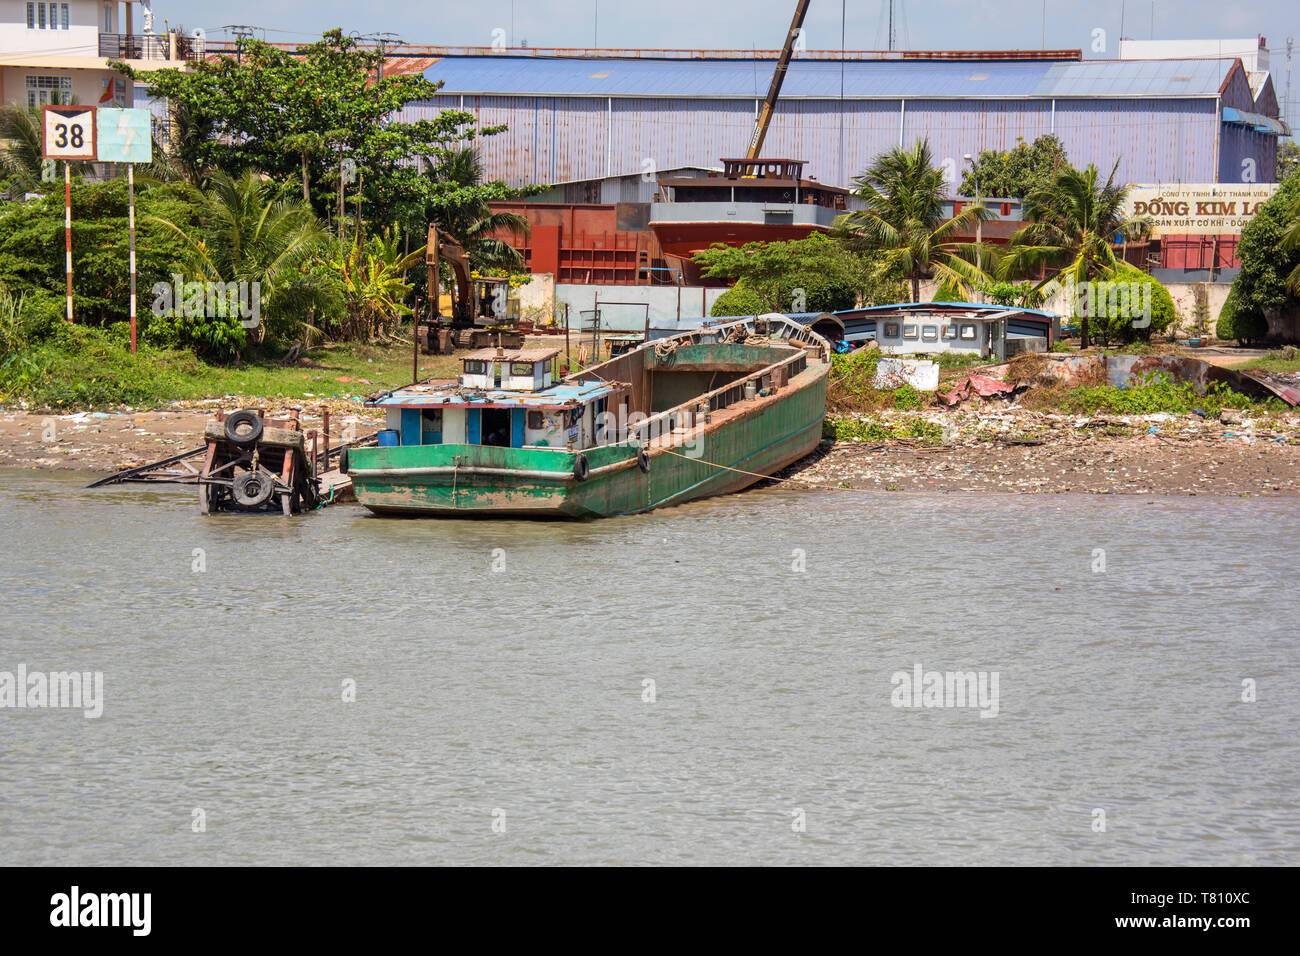 A boatyard on the Mekong River, Vietnam - Stock Image